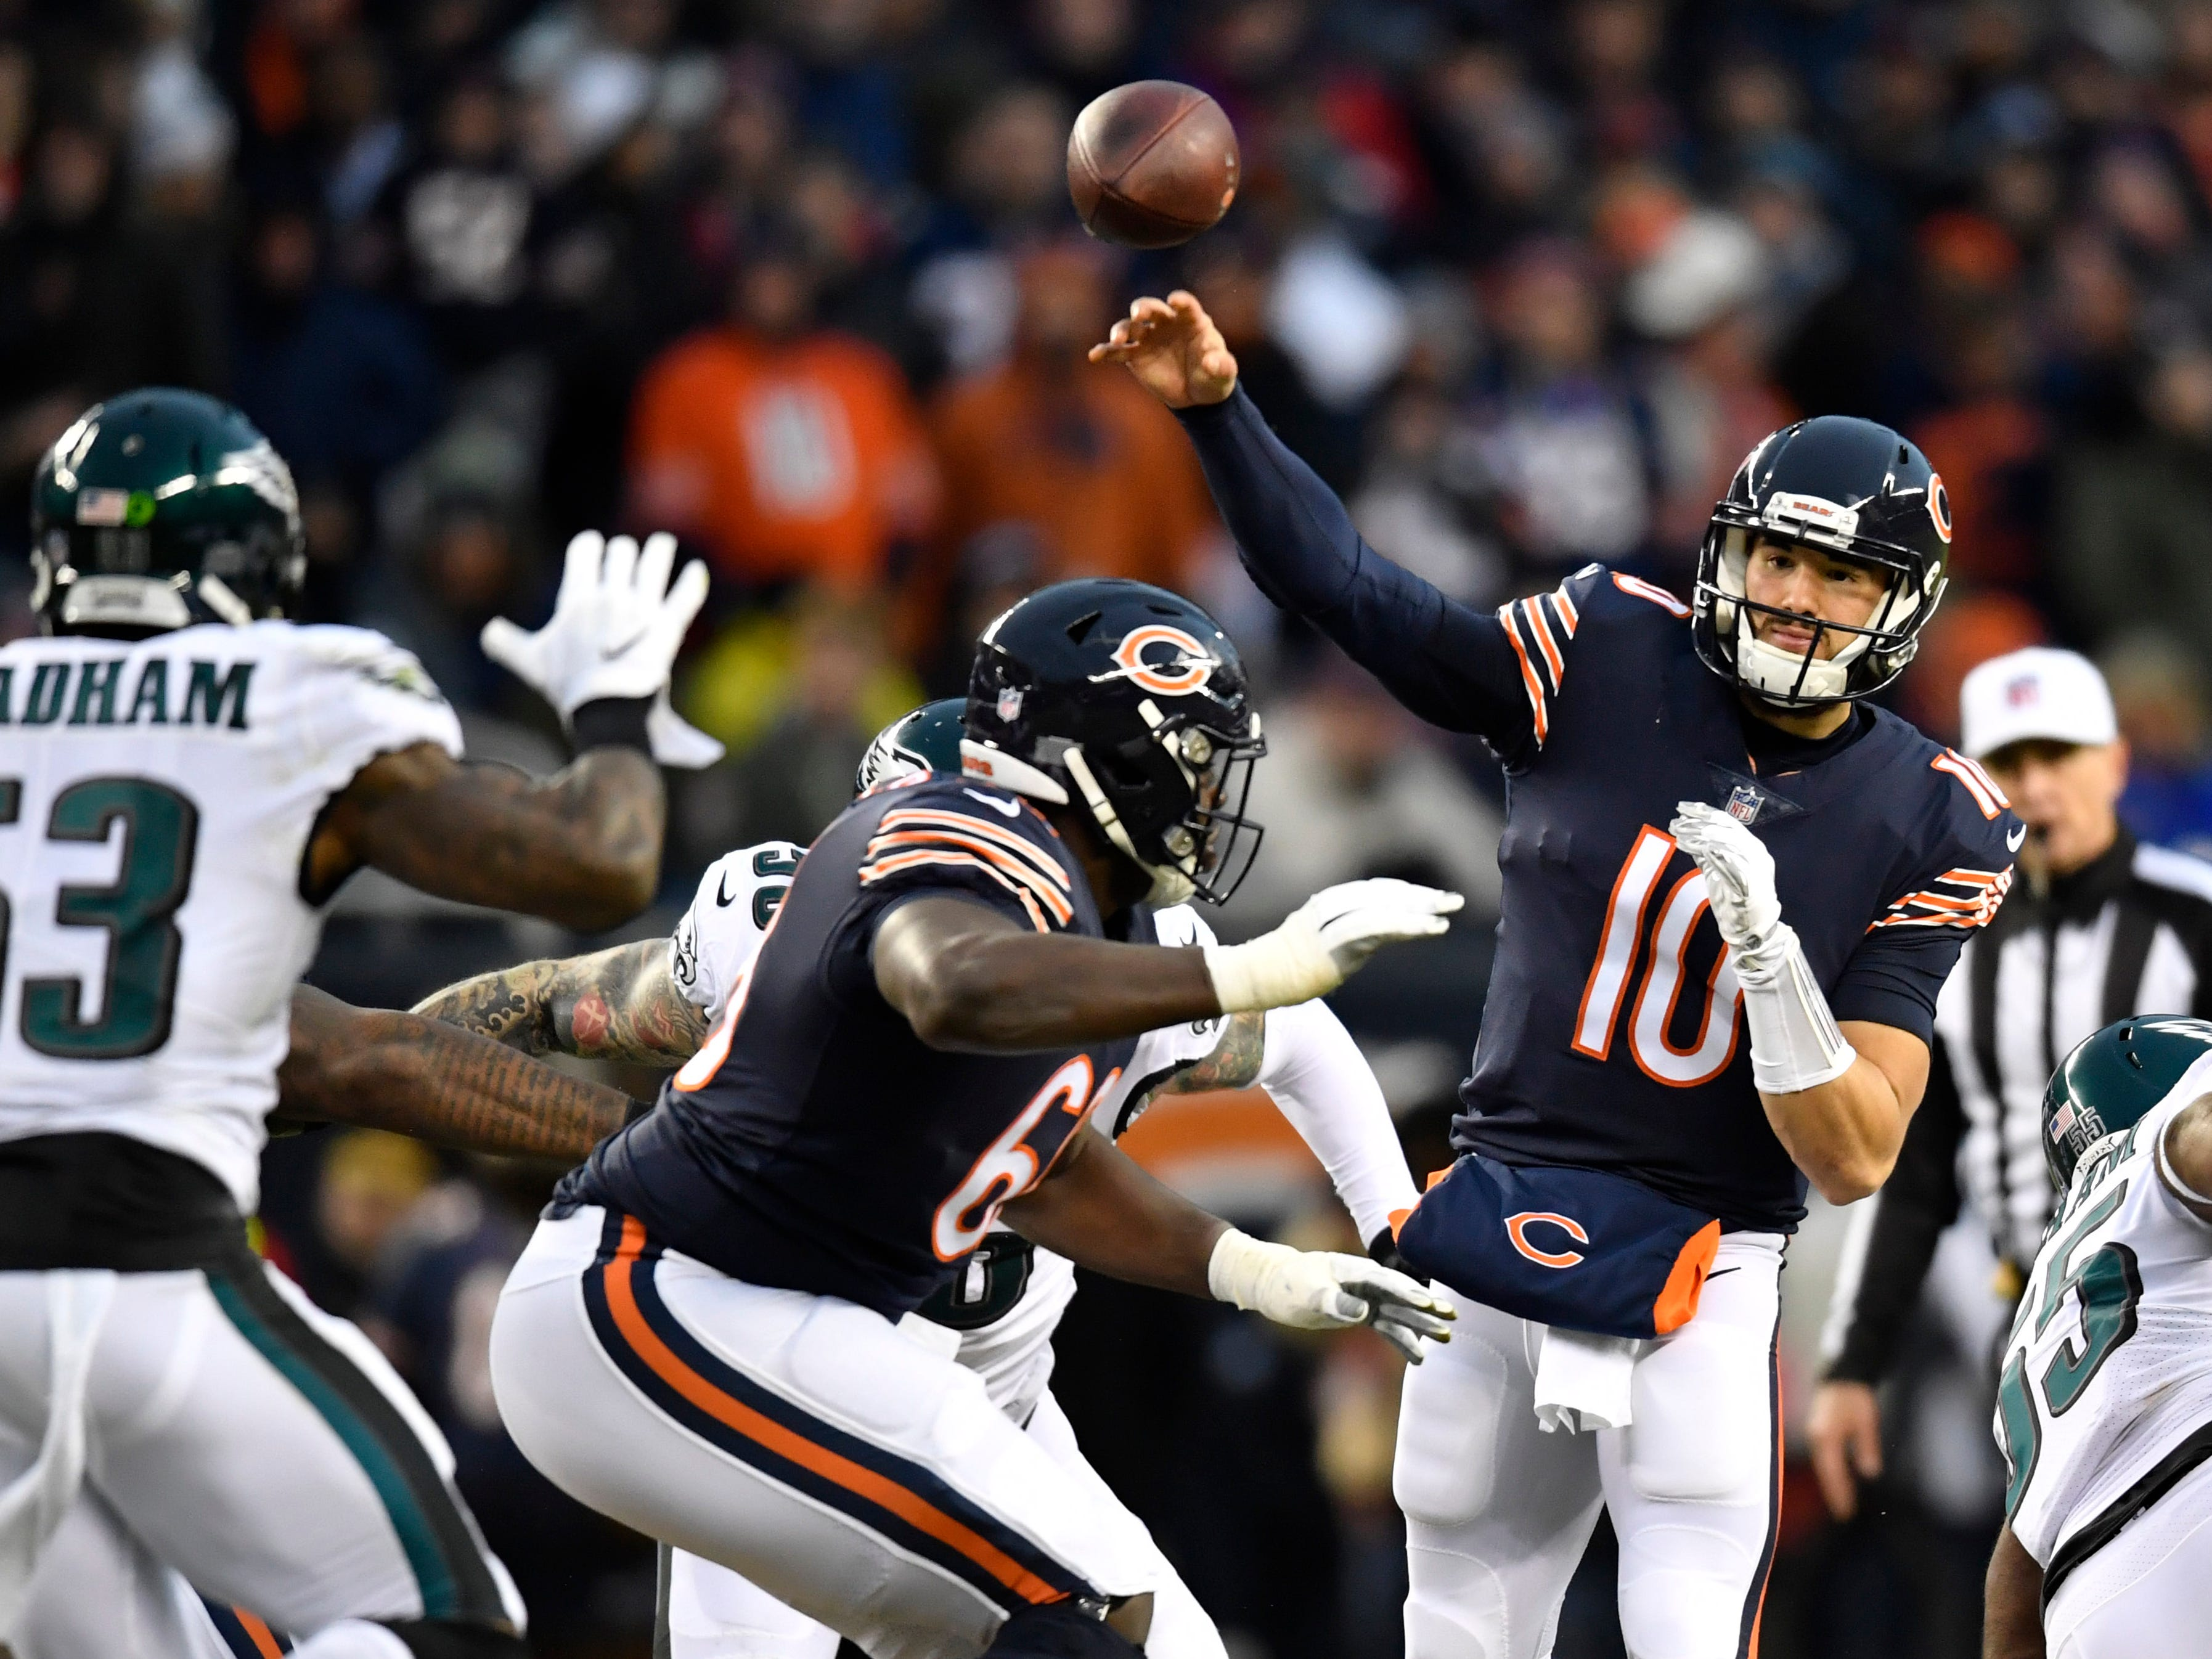 Chicago Bears quarterback Mitchell Trubisky (10) throws a pass against the Philadelphia Eagles in the first half a NFC Wild Card playoff football game at Soldier Field.